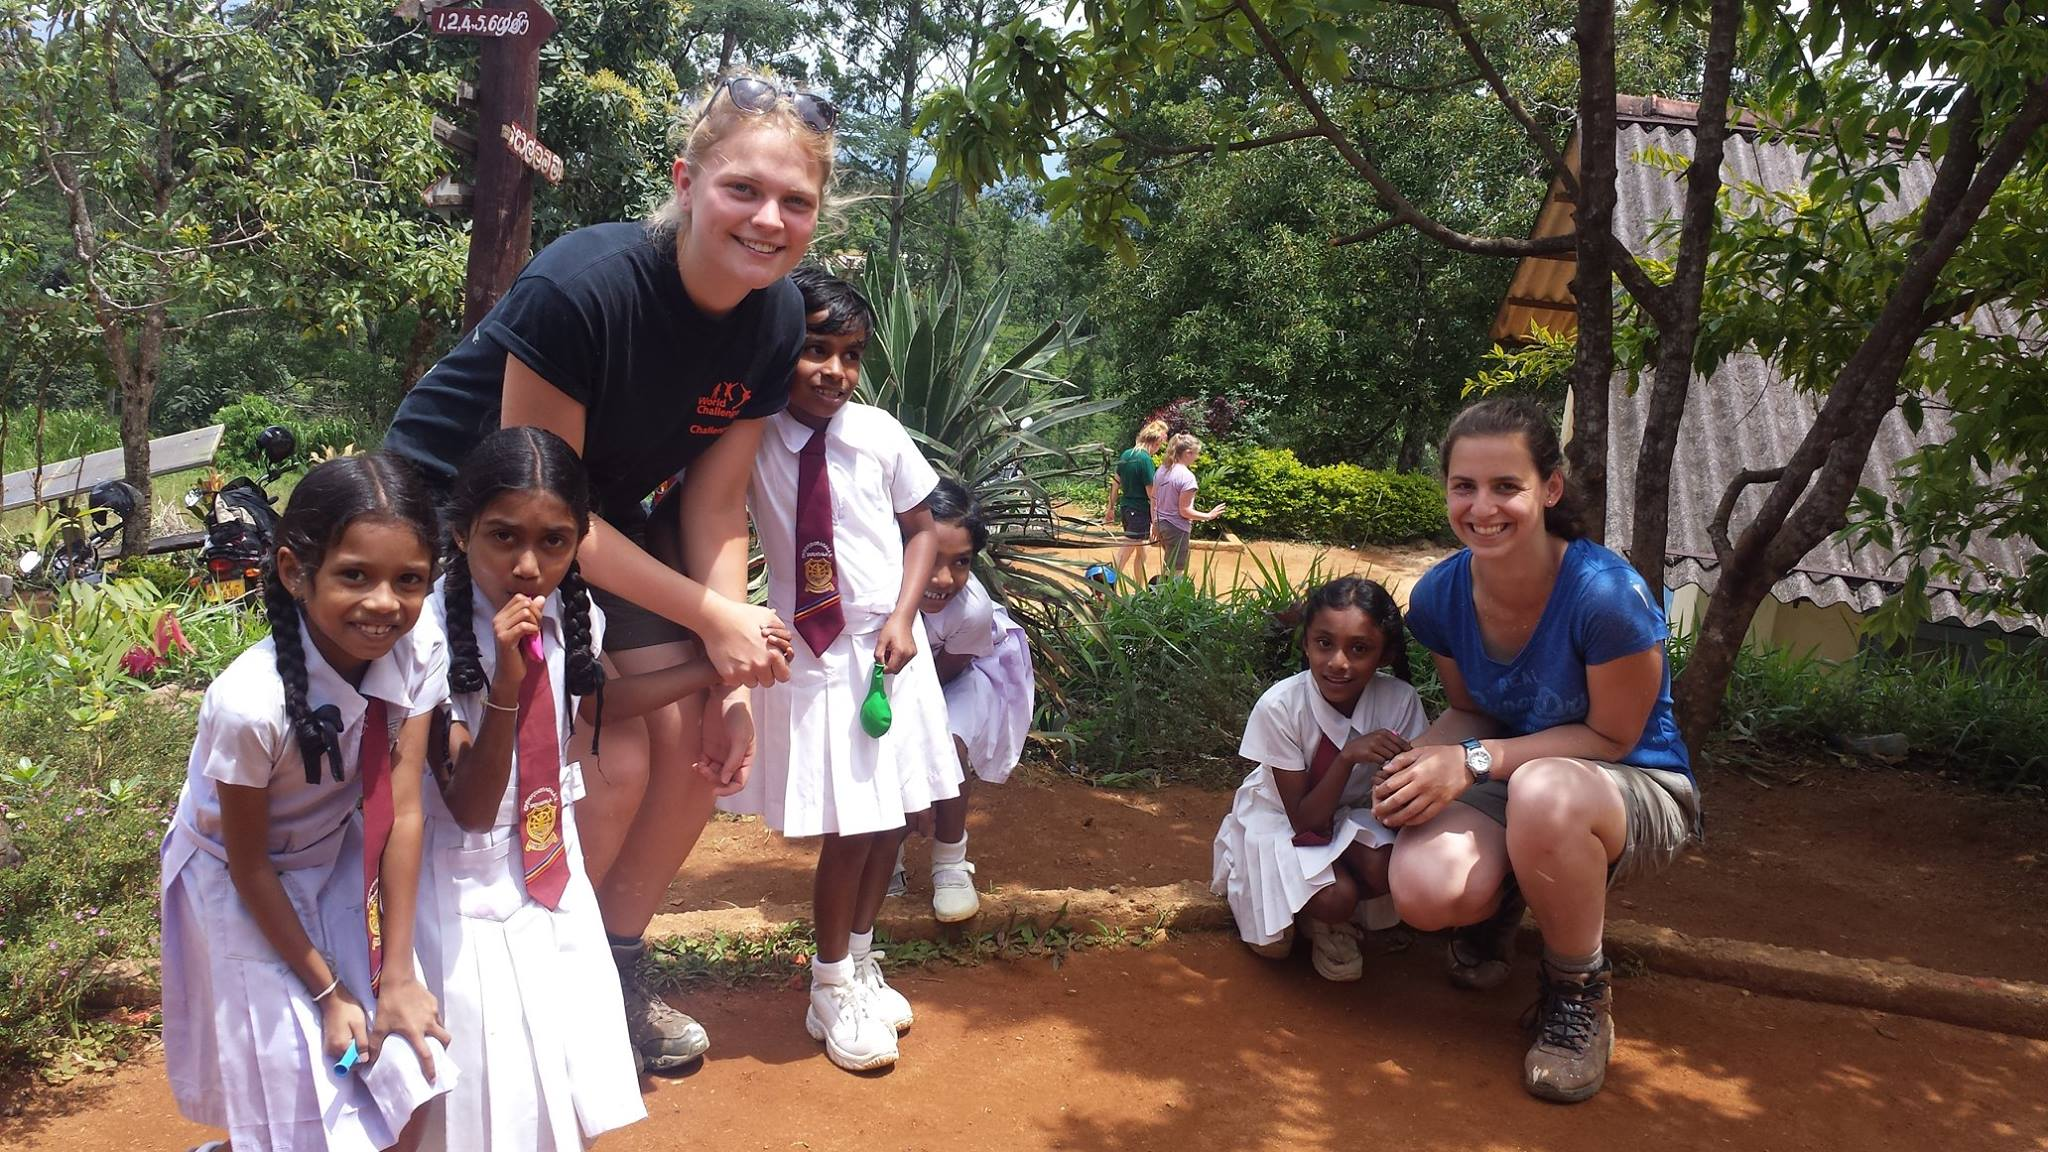 assisting in foreign education on gap year, receive funding and grants